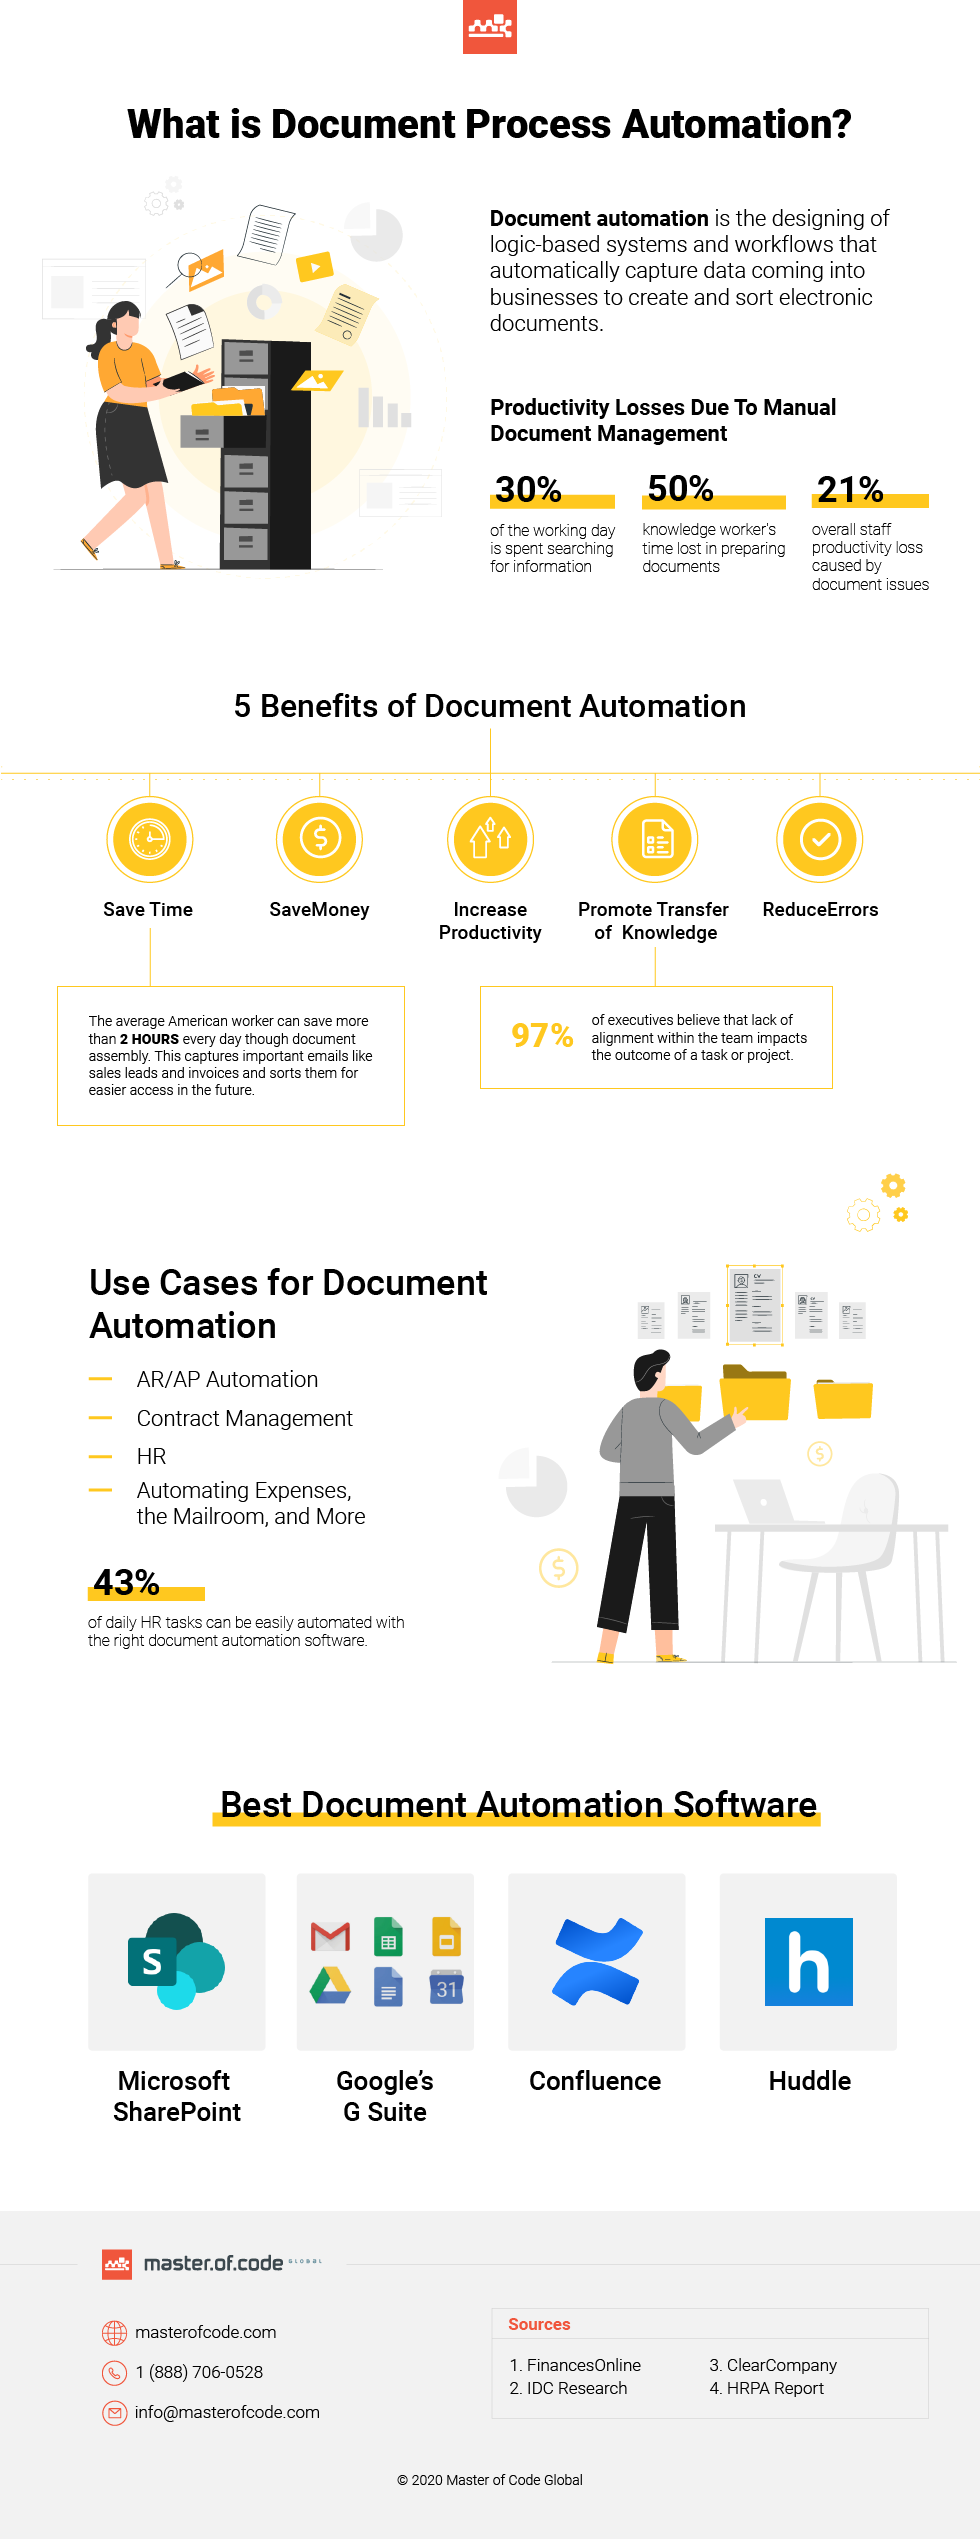 What is Document Process Automation?